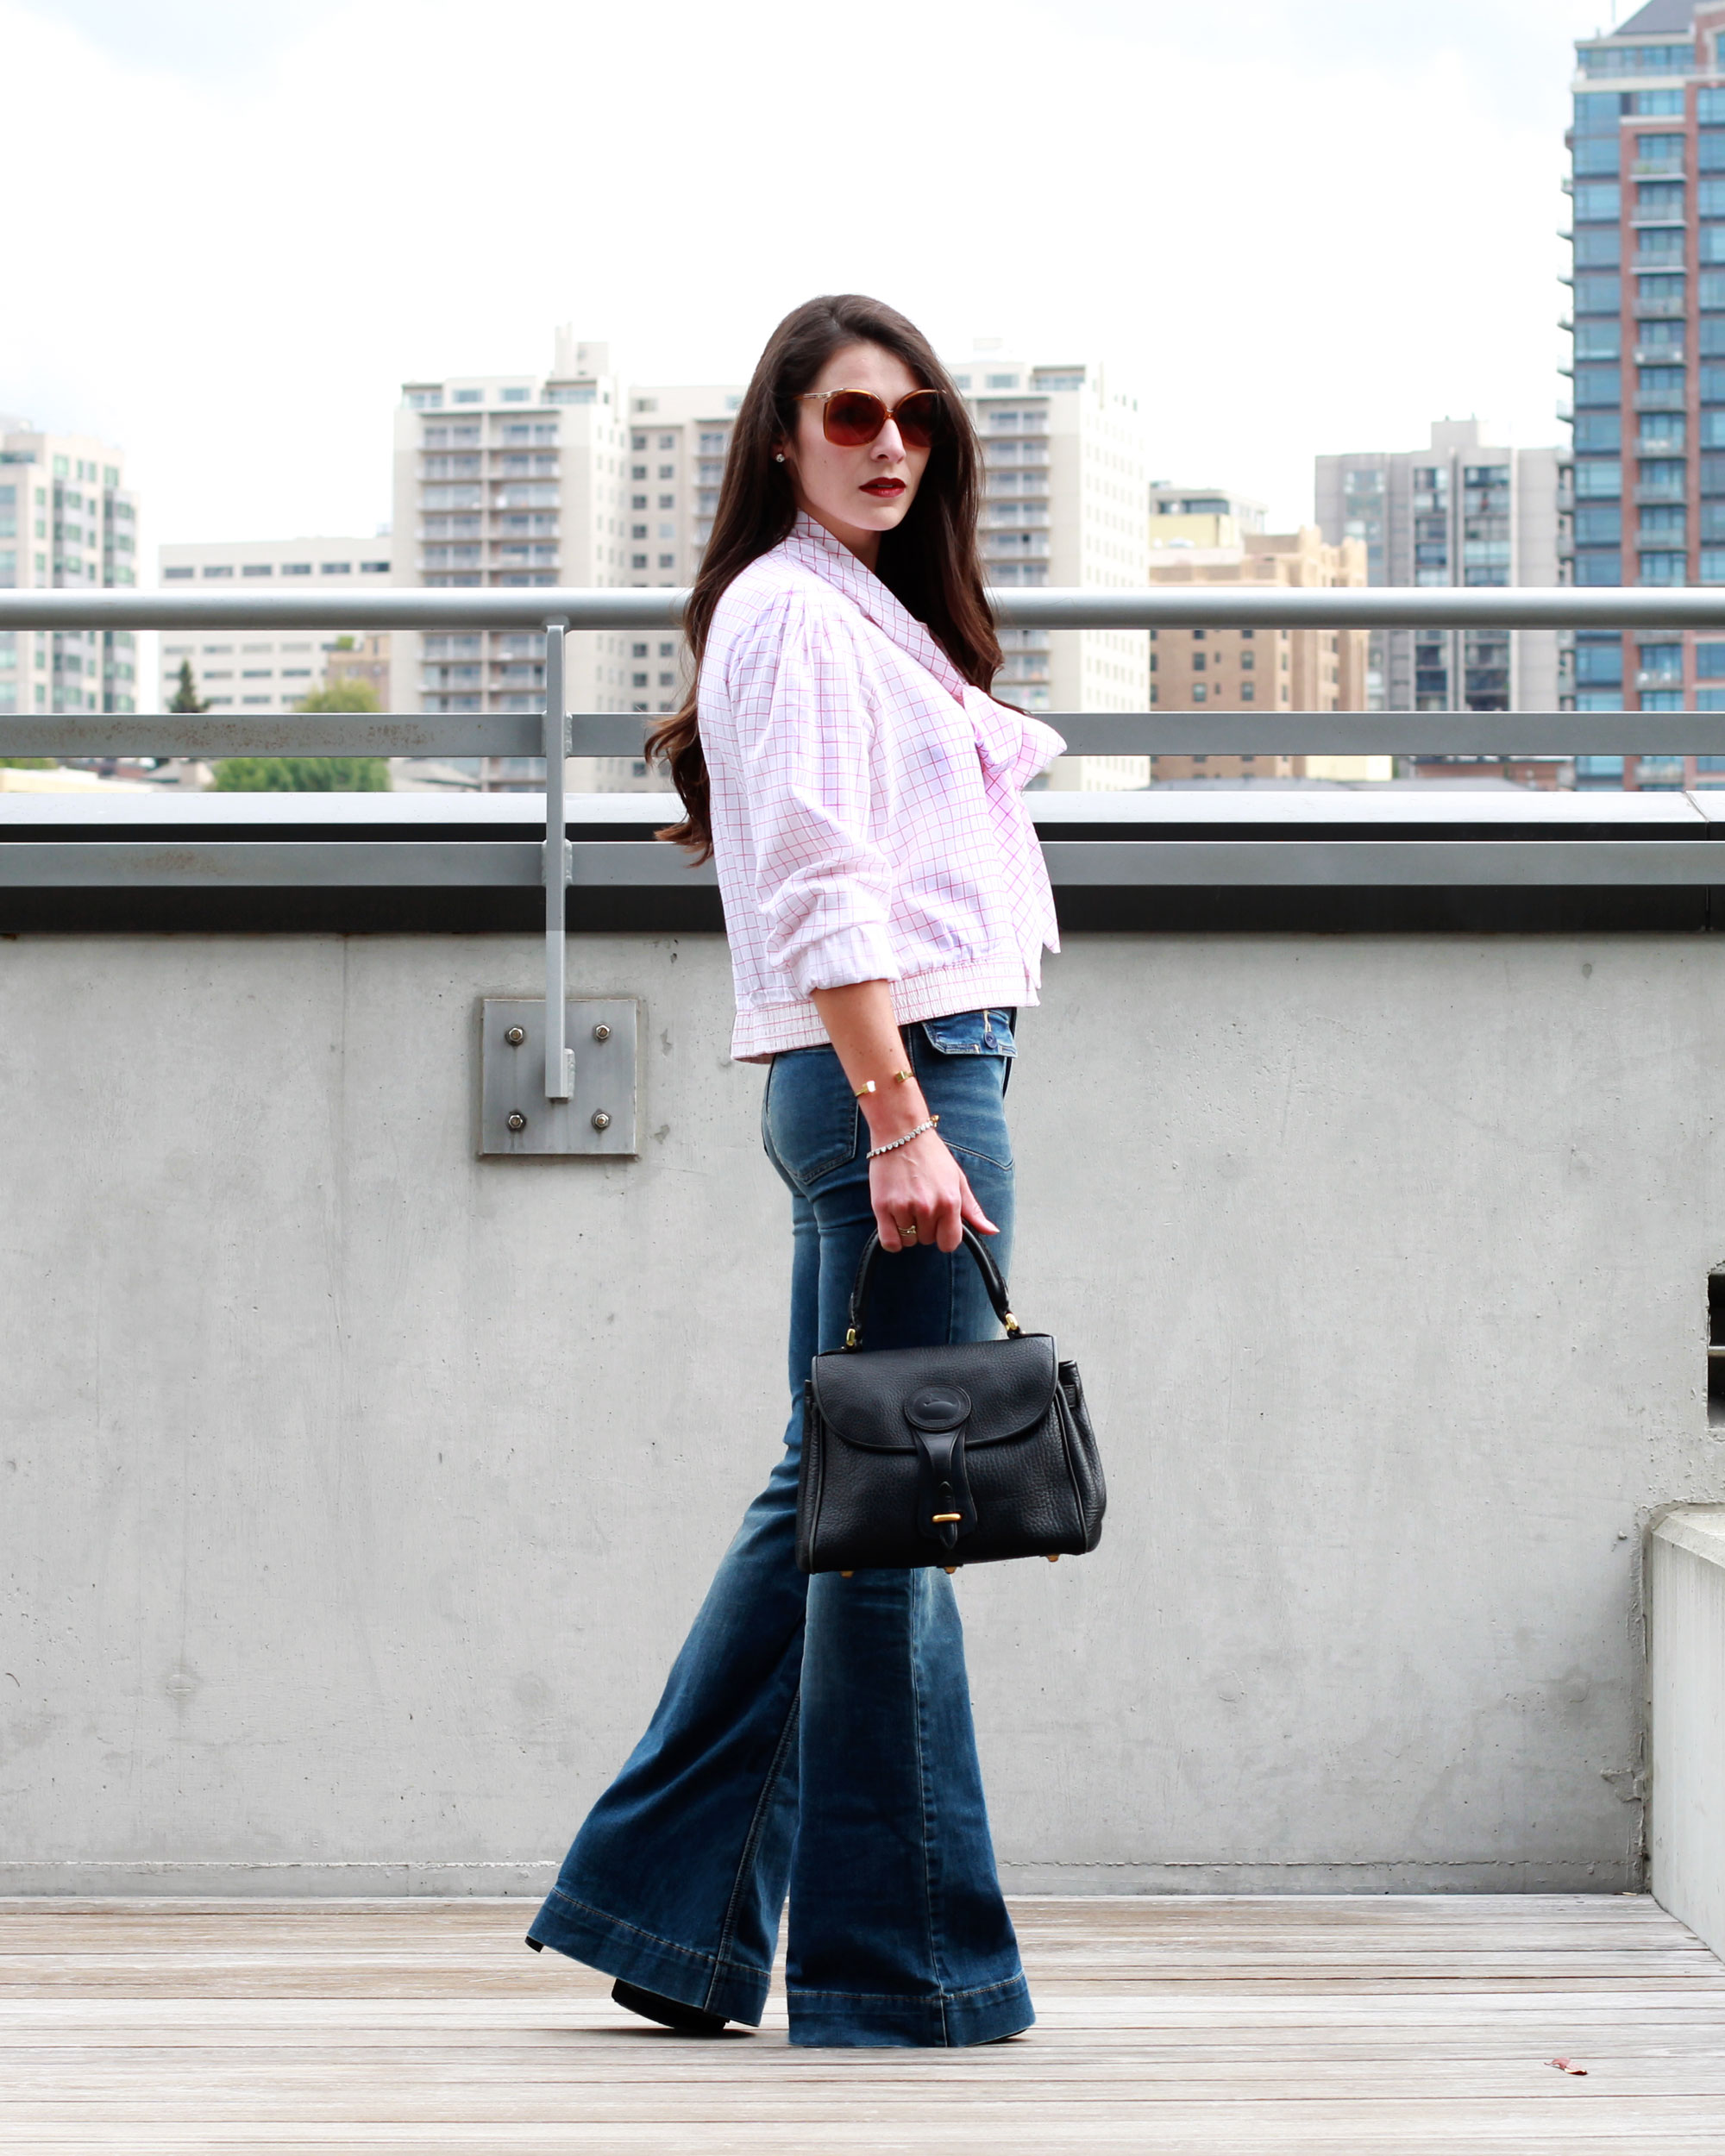 Fall Fashion, 70s Fashion Trend, Flare Jeans, Bow Blouse, Vintage Dior Sunglasses, Vintage Dooney & Bourke Bag, NARS Velvet Matte Lip Pencil in Cruella